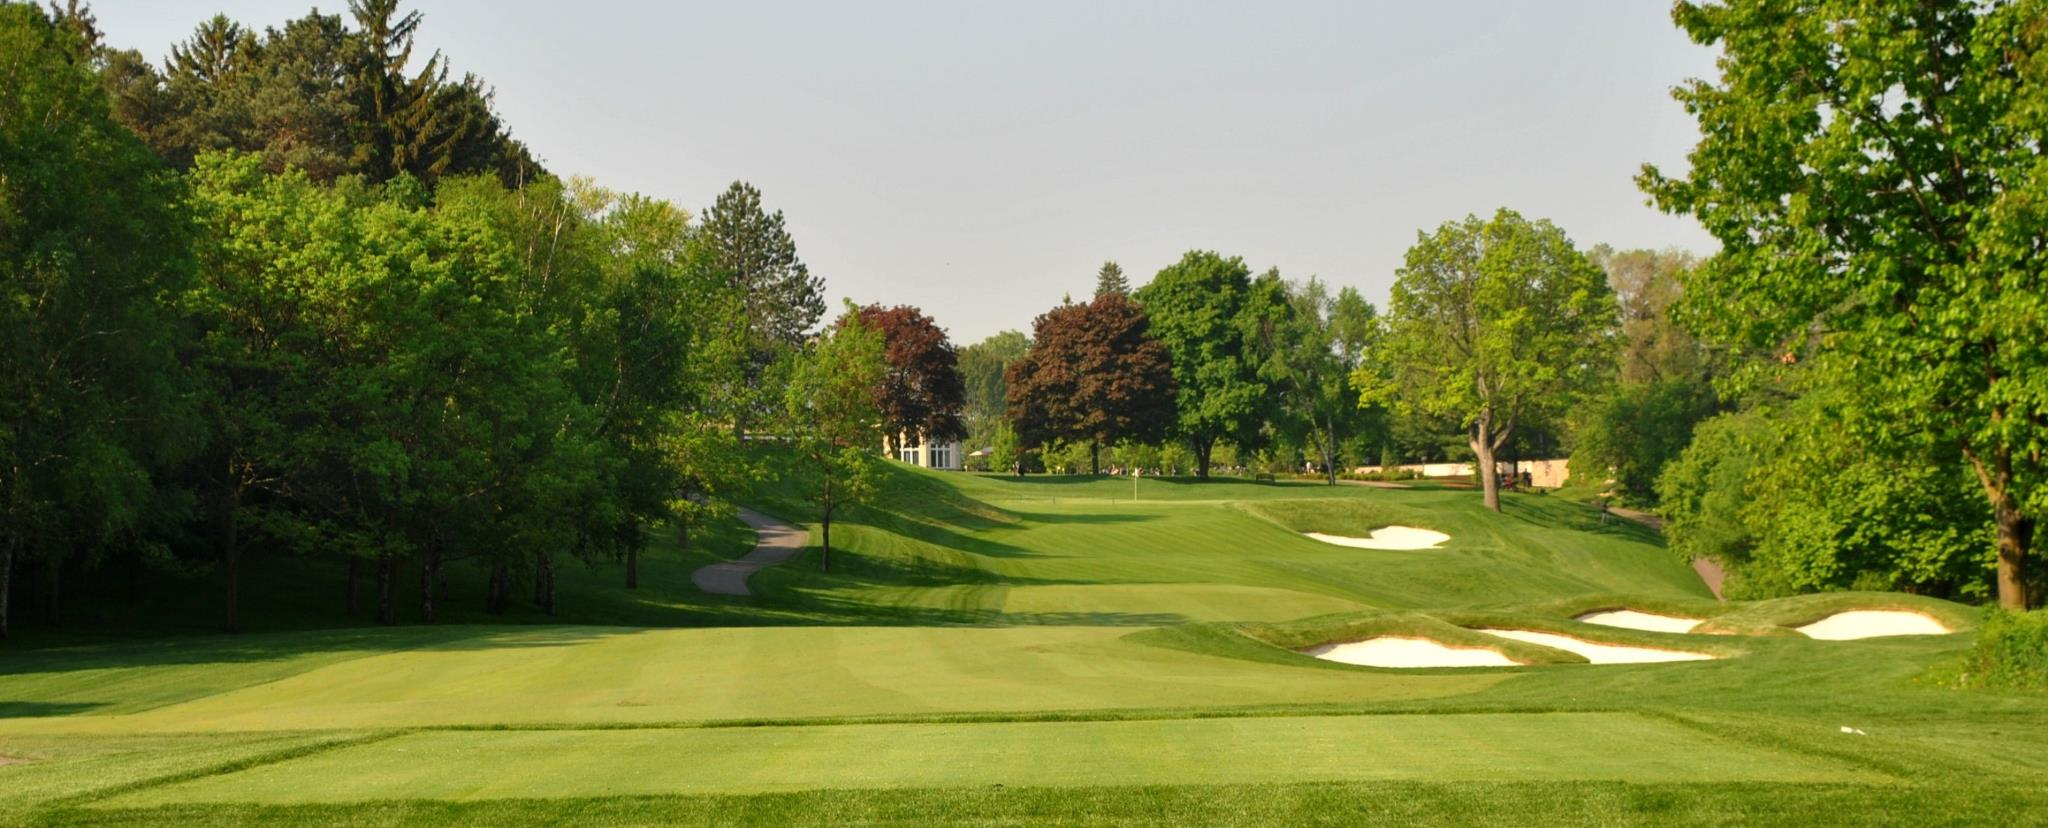 Overview of golf course named Lambton Golf and Country Club